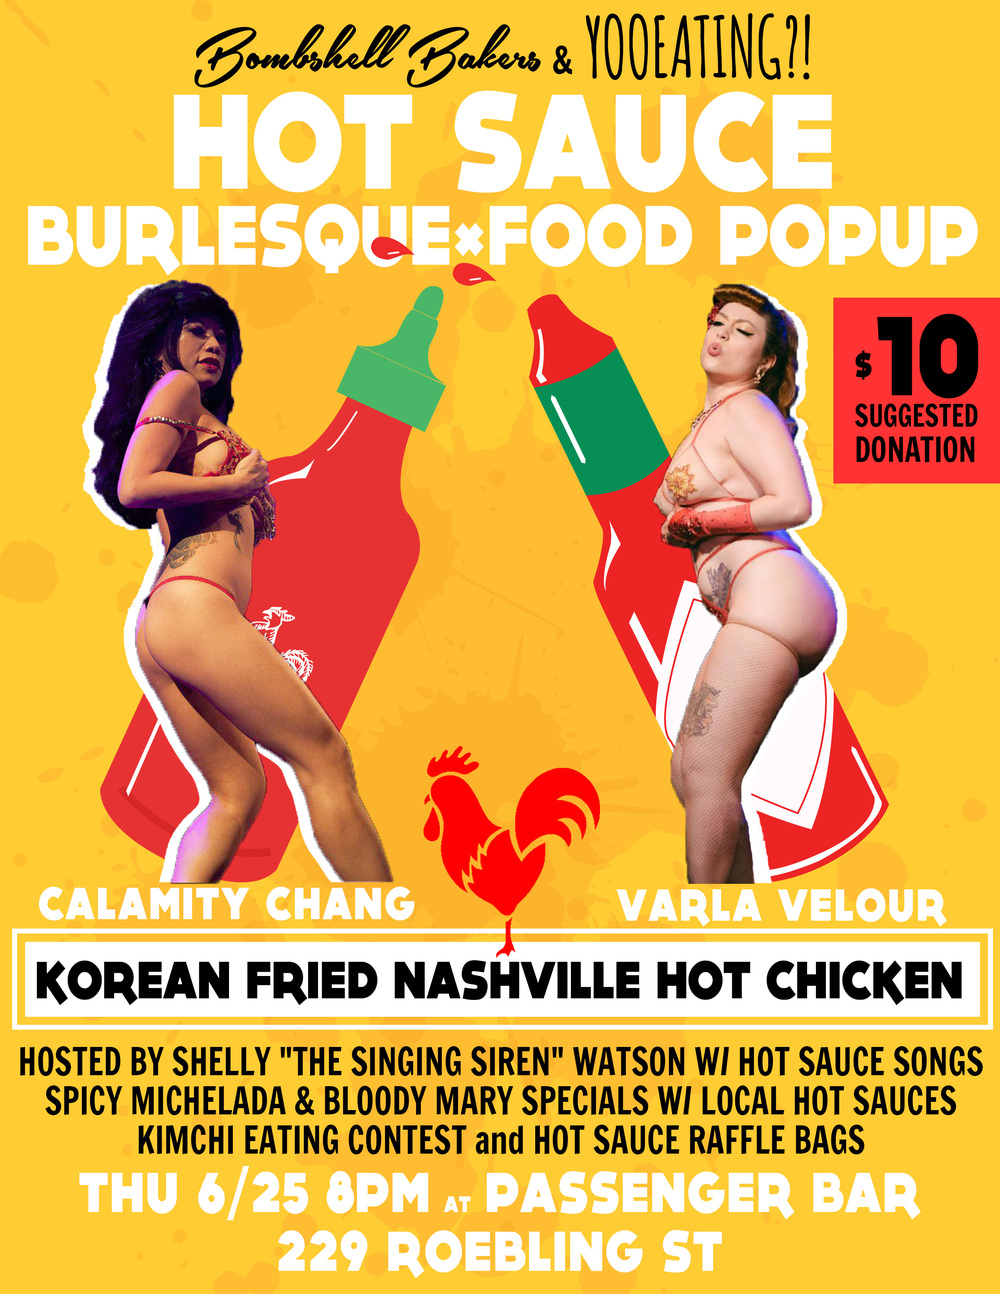 hotsauceburlesque_flyer_color.jpg